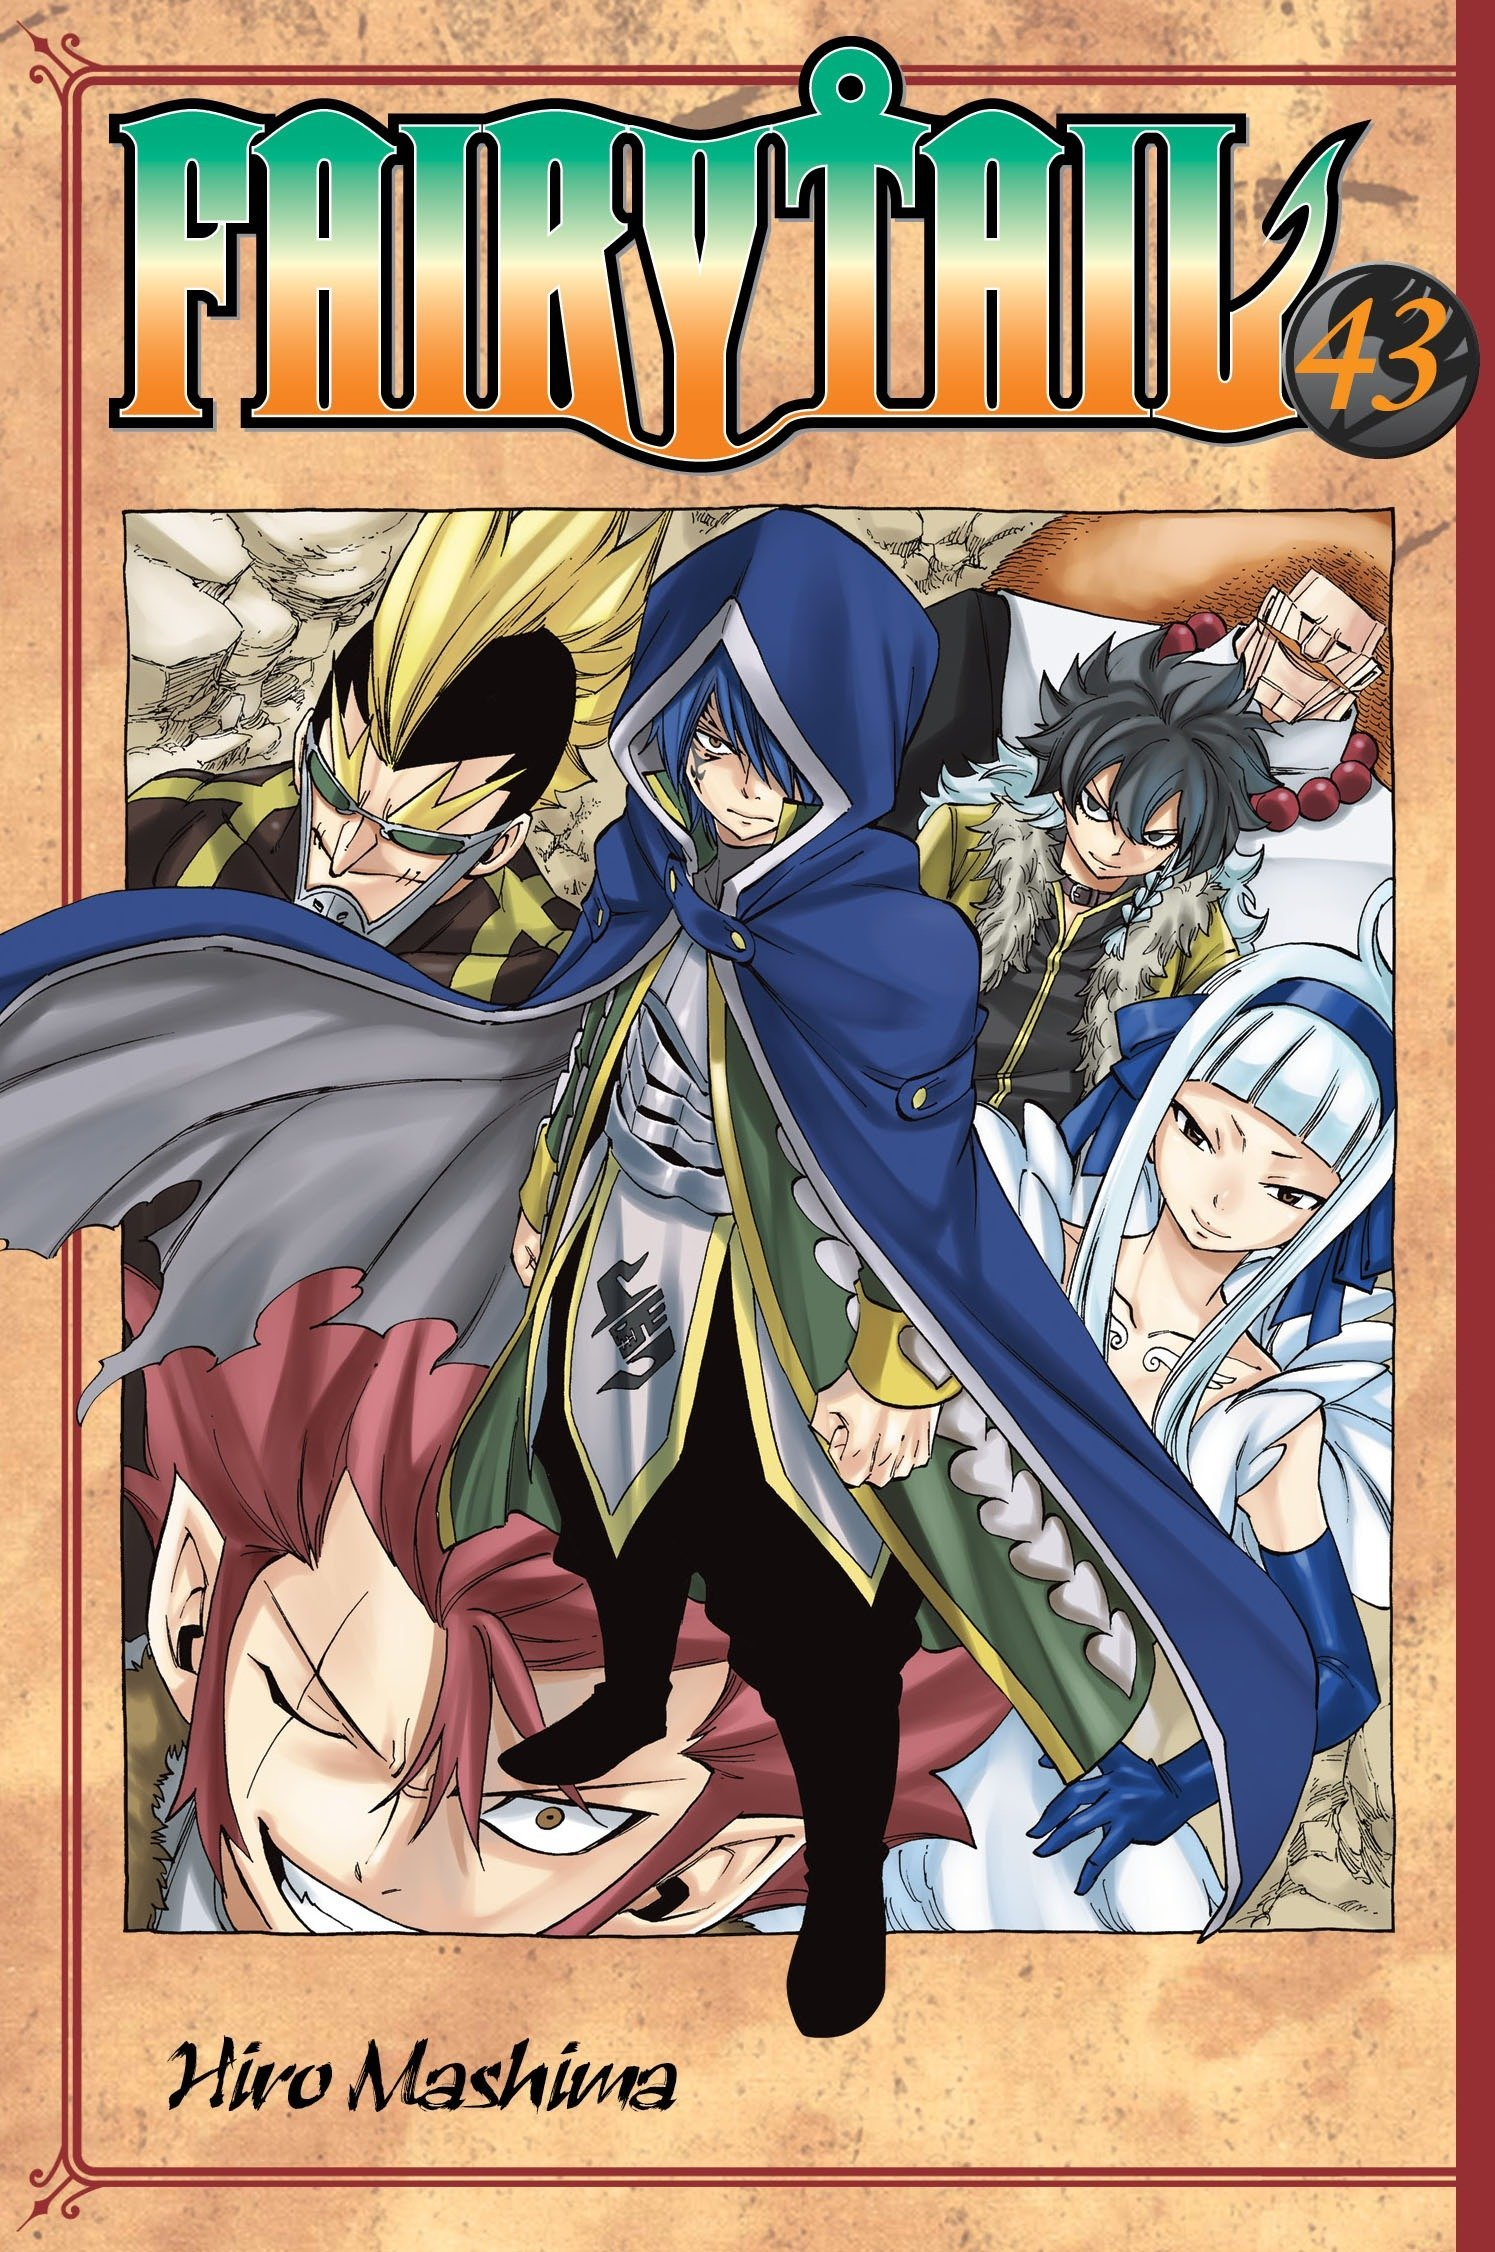 Fairy Tail 43 Hiro Mashima 9781612625621 Amazon Com Books